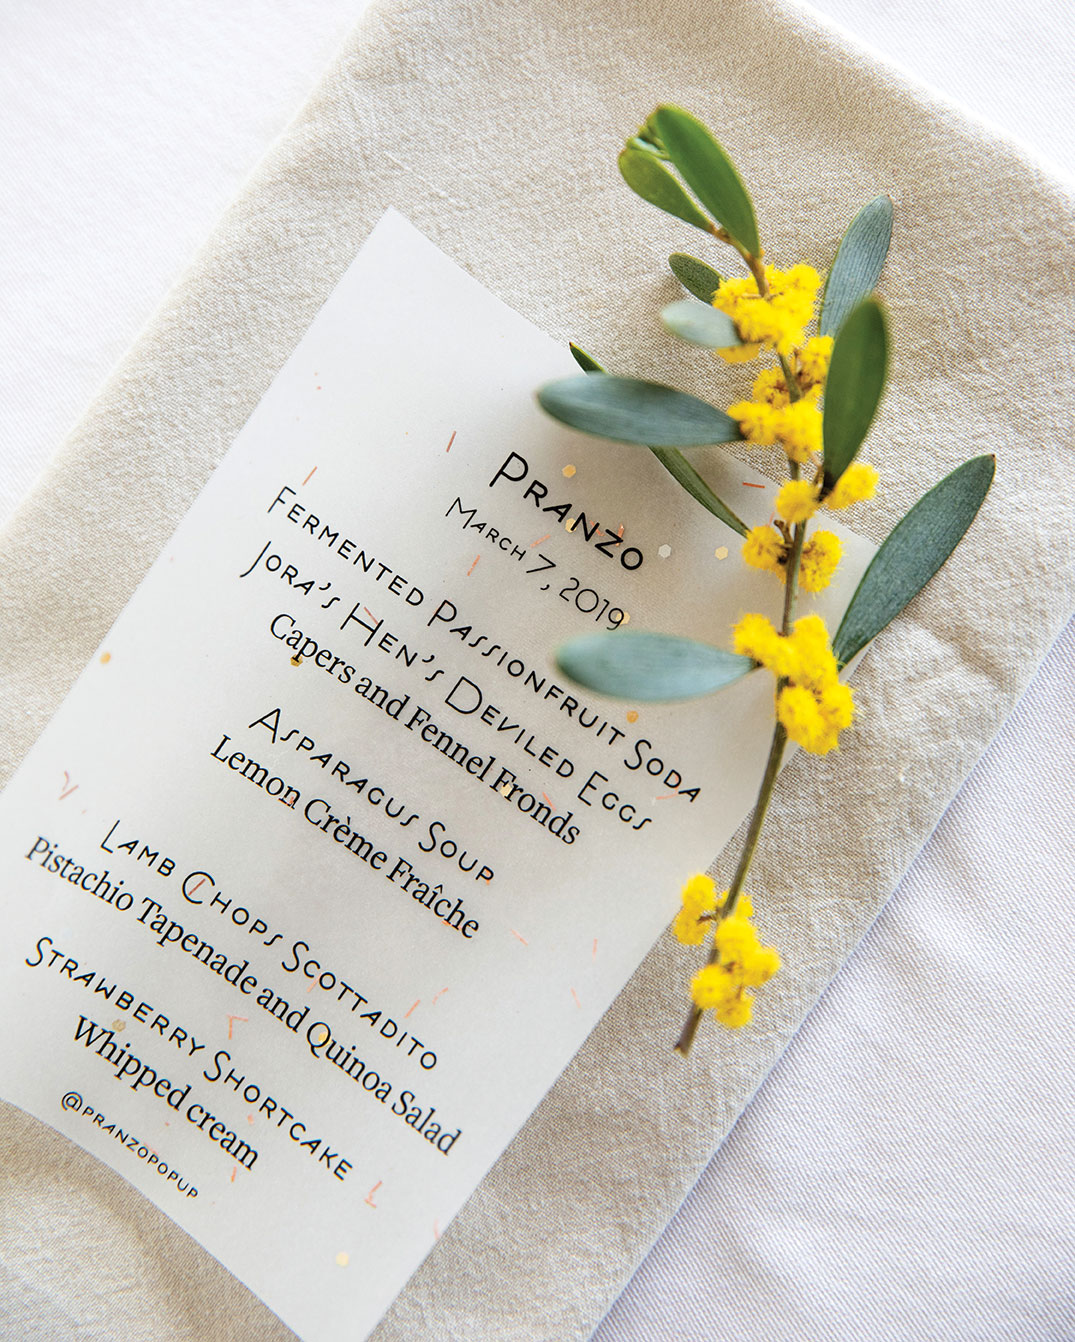 pranzo popup pop-up lunch luncheon printed menu on napkin with yellow flower garnish